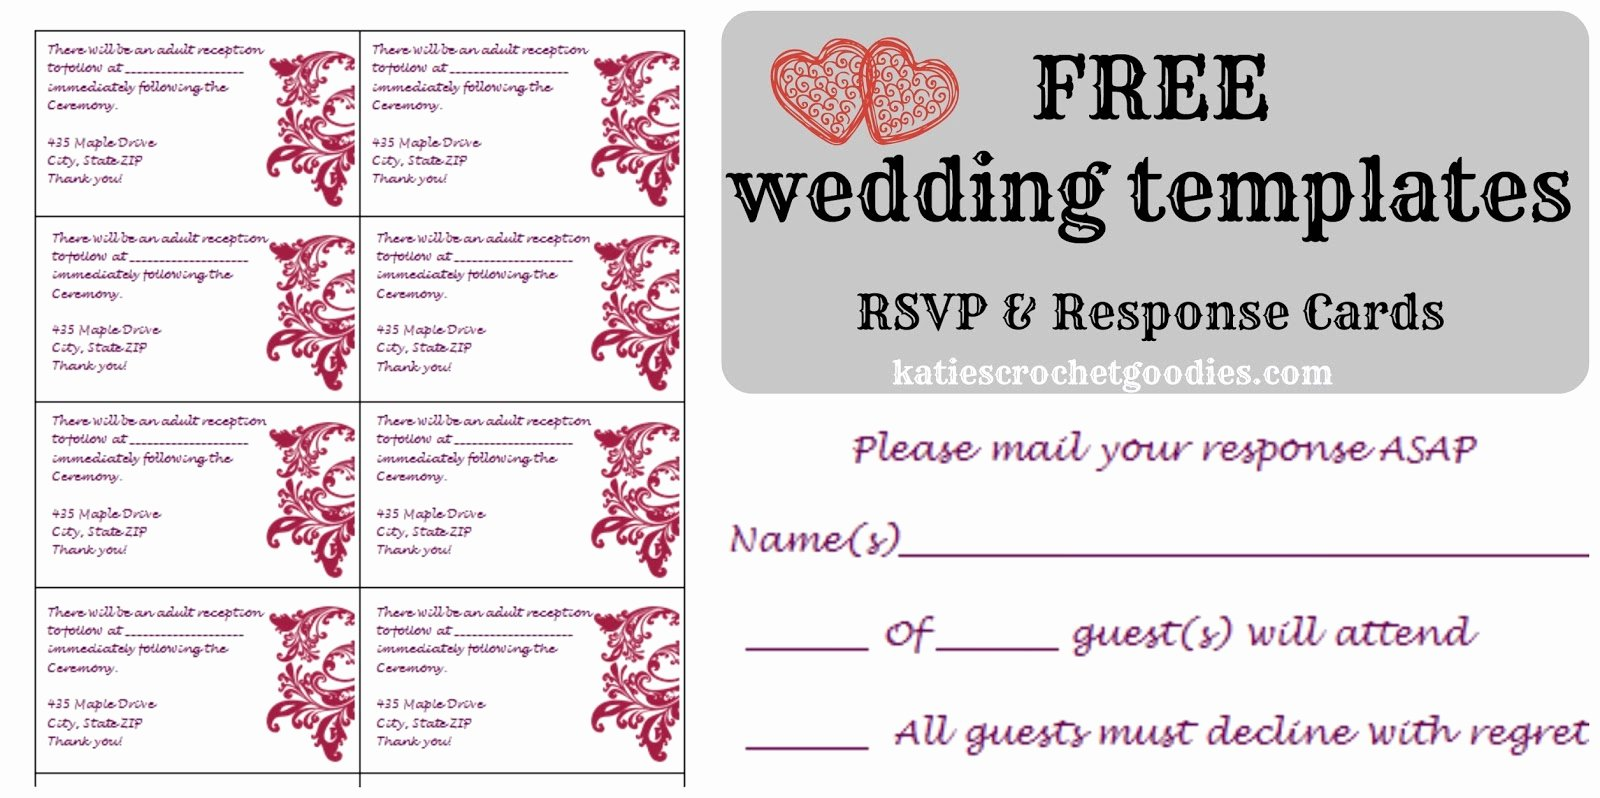 Wedding Rsvp Postcards Template Lovely Free Wedding Templates Rsvp & Reception Cards Katie S